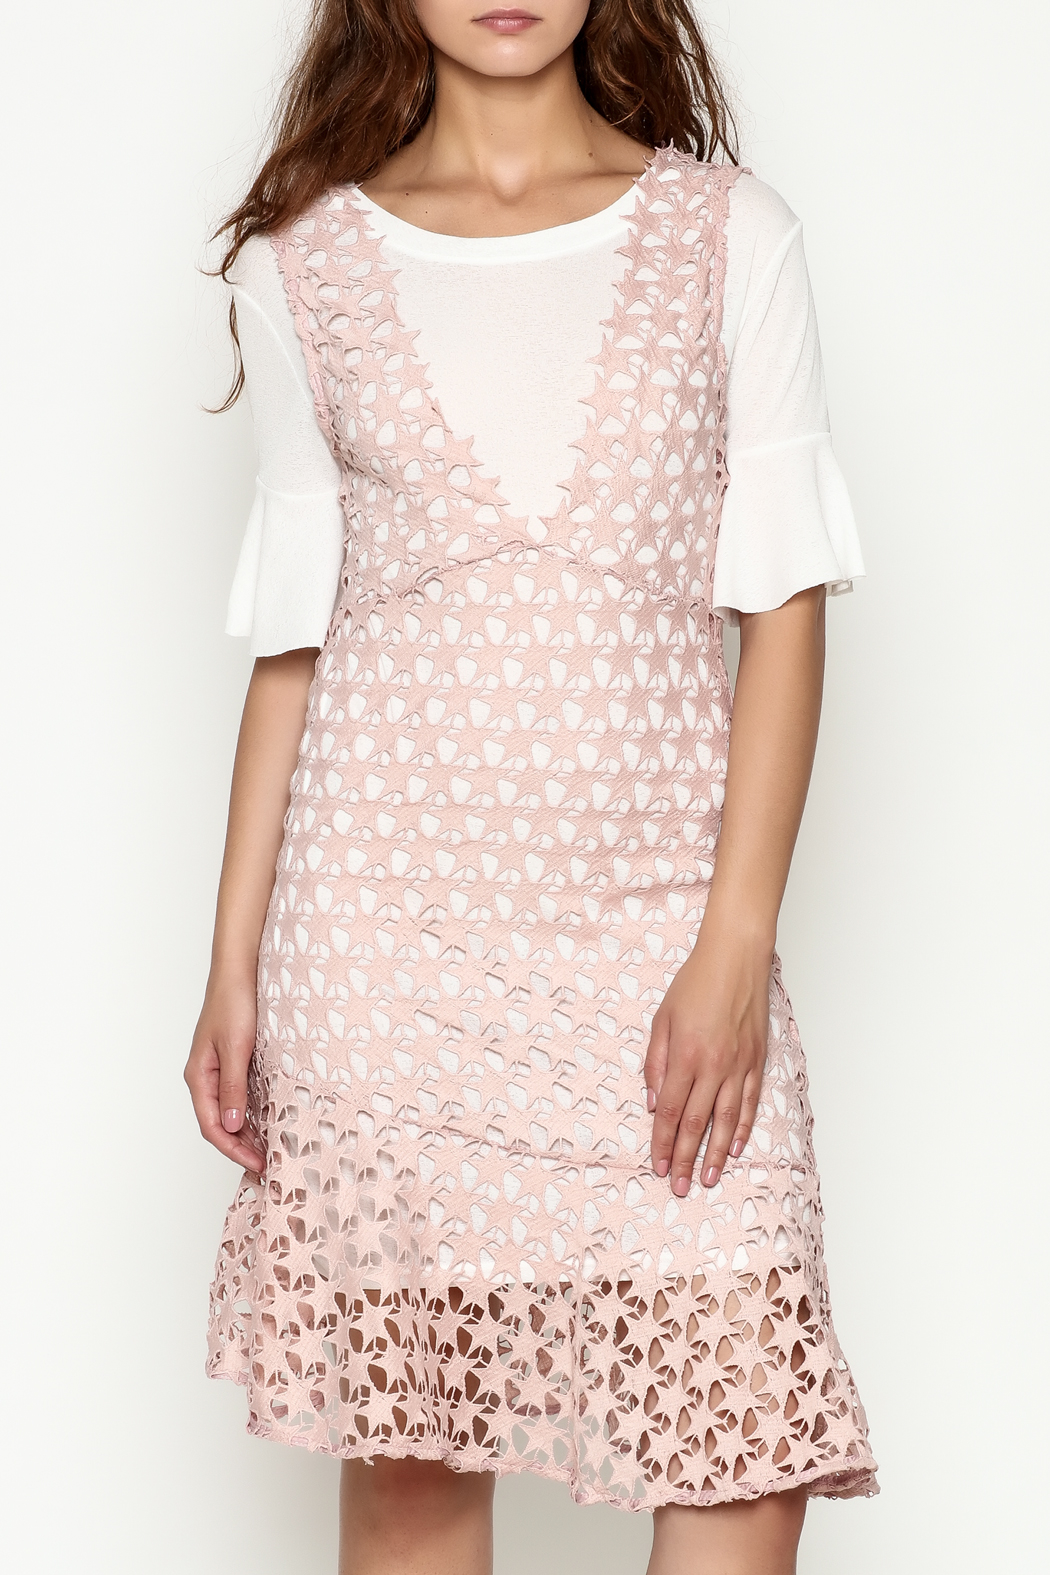 THINK CLOSET Star Lace Dress - Front Cropped Image